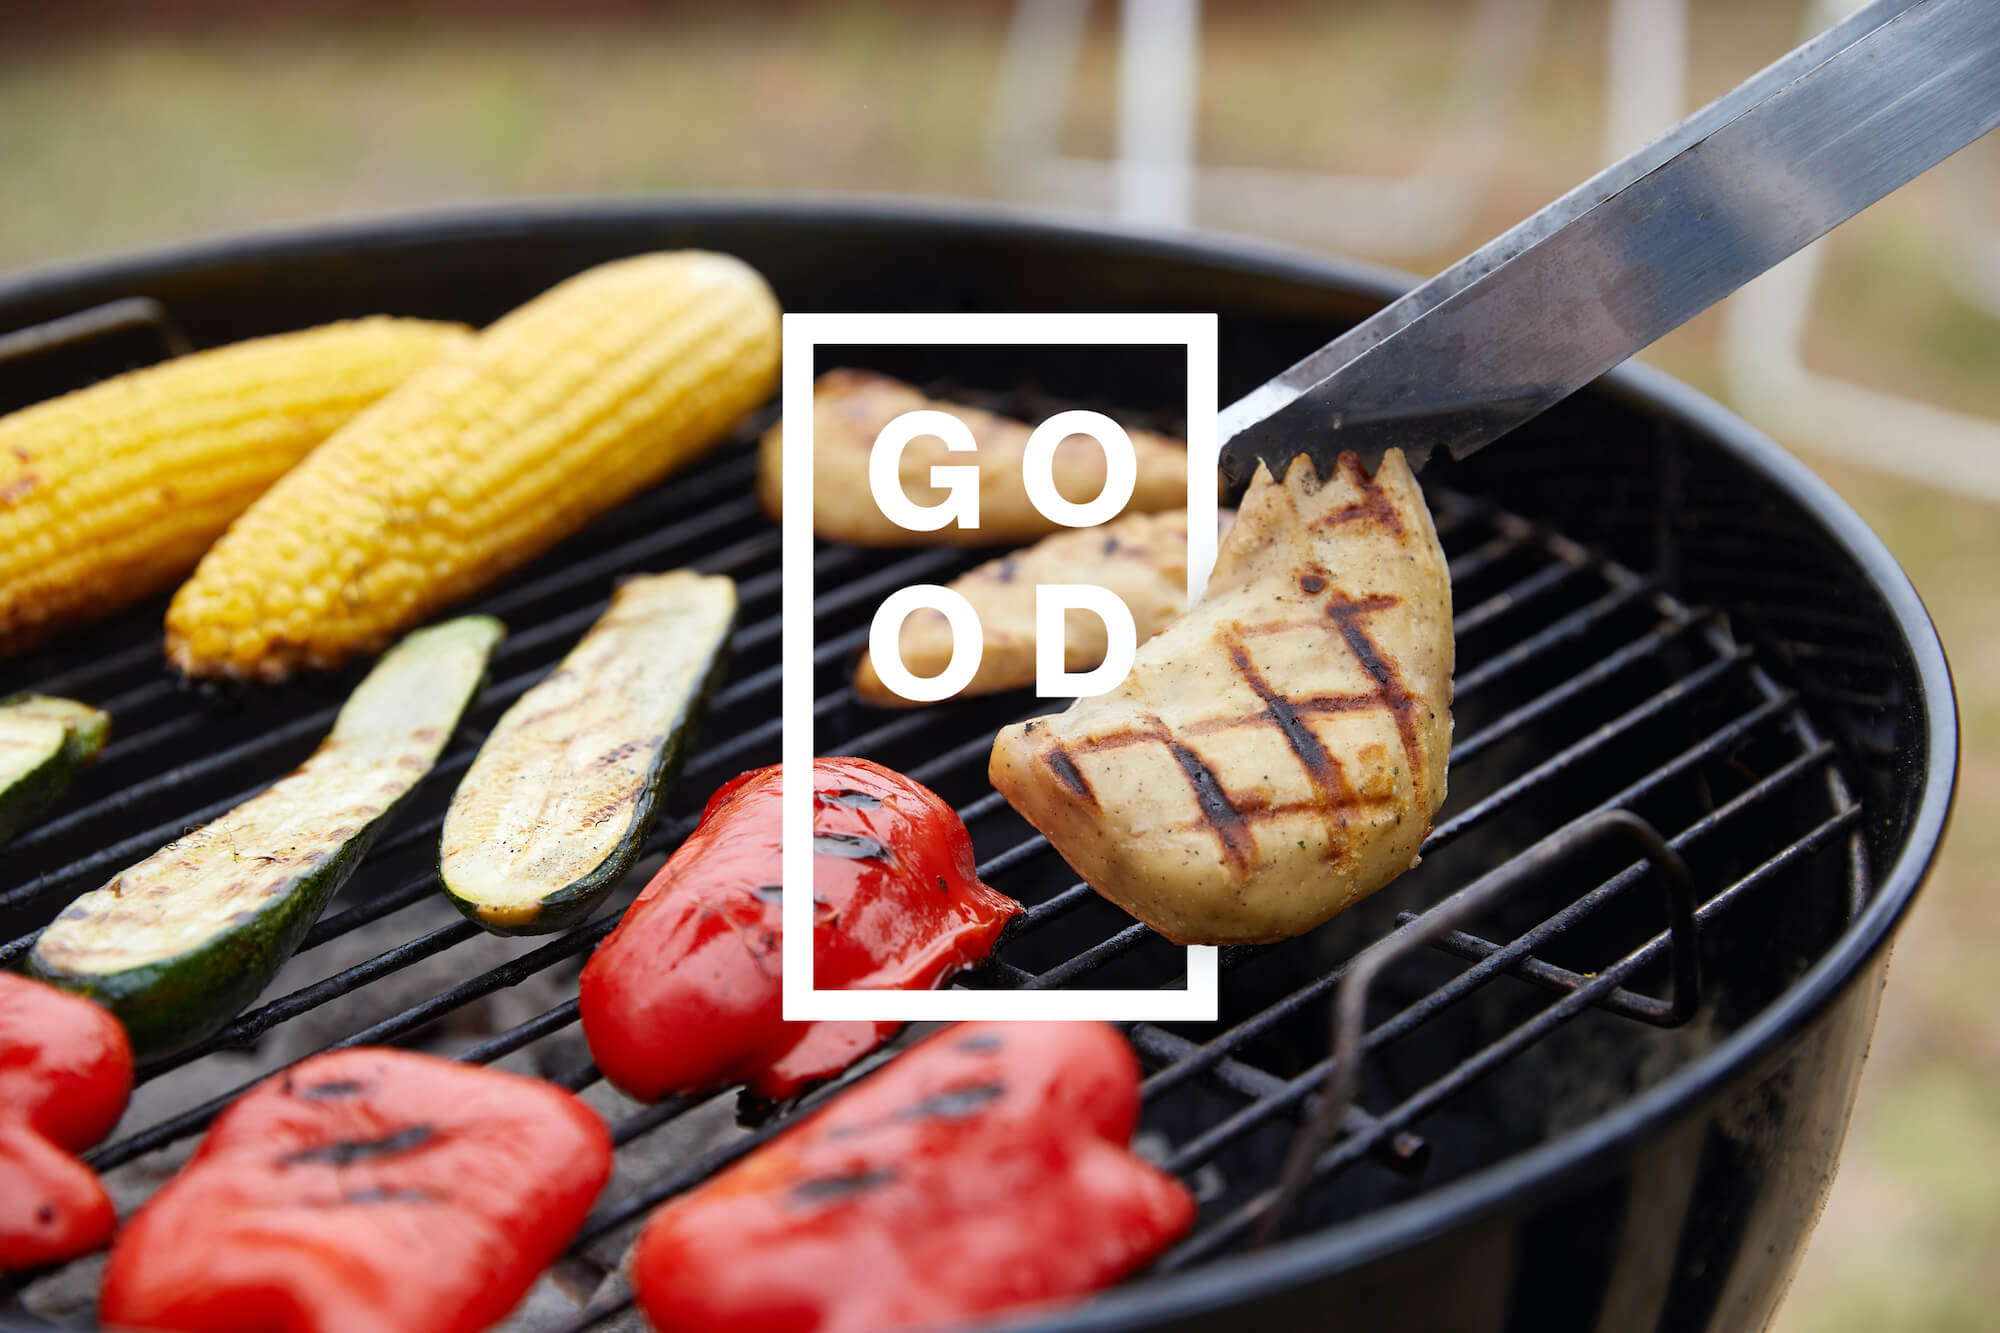 Grilling cell-cultured chicken with other vegetables and the GOOD meat logo. December 2020